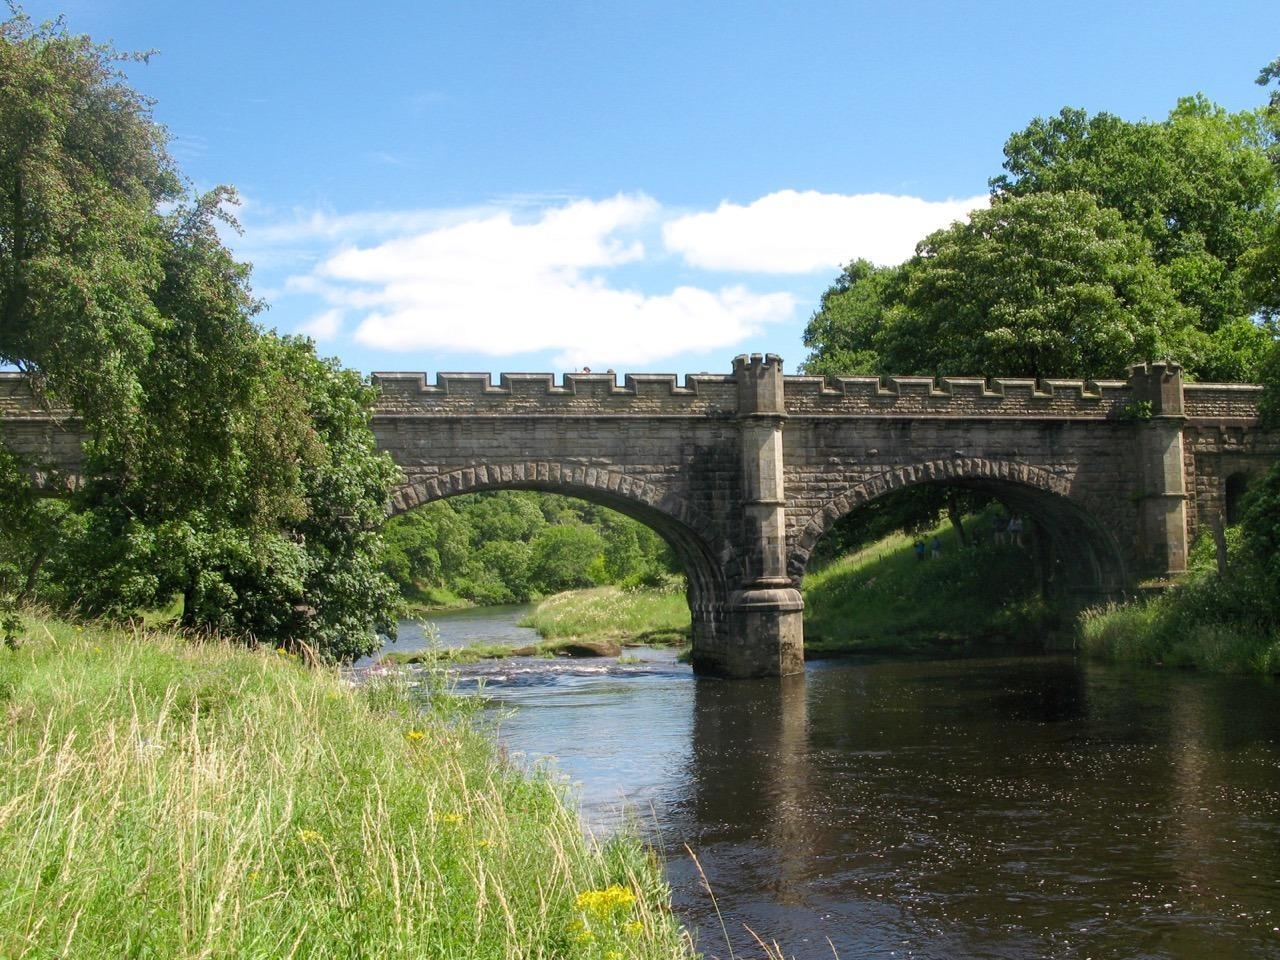 Man stabbed at countryside barbecue near Bolton Abbey in the Yorkshire Dales